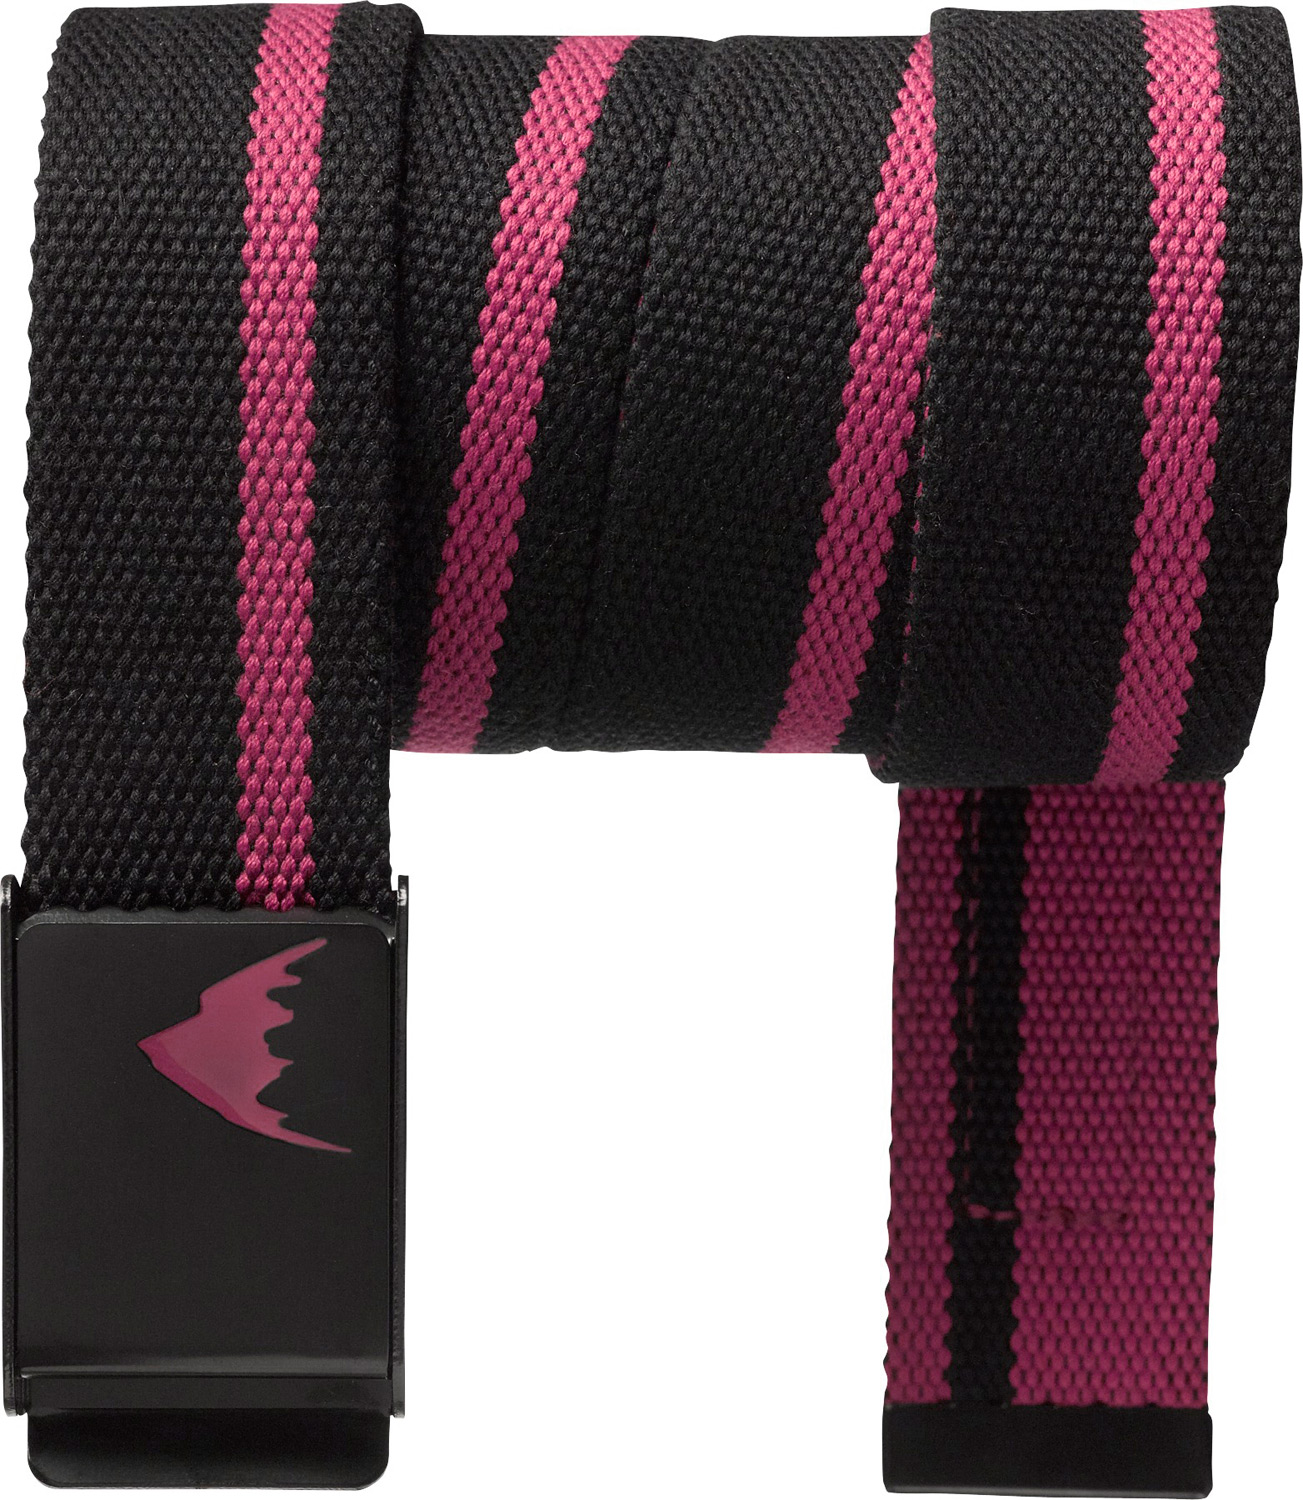 Snowboard Key Features of the Burton Striper Belt: Burton Process Logo Rivet Burton Word Mark Etched Buckle Polyester Webbing Belt - $14.95